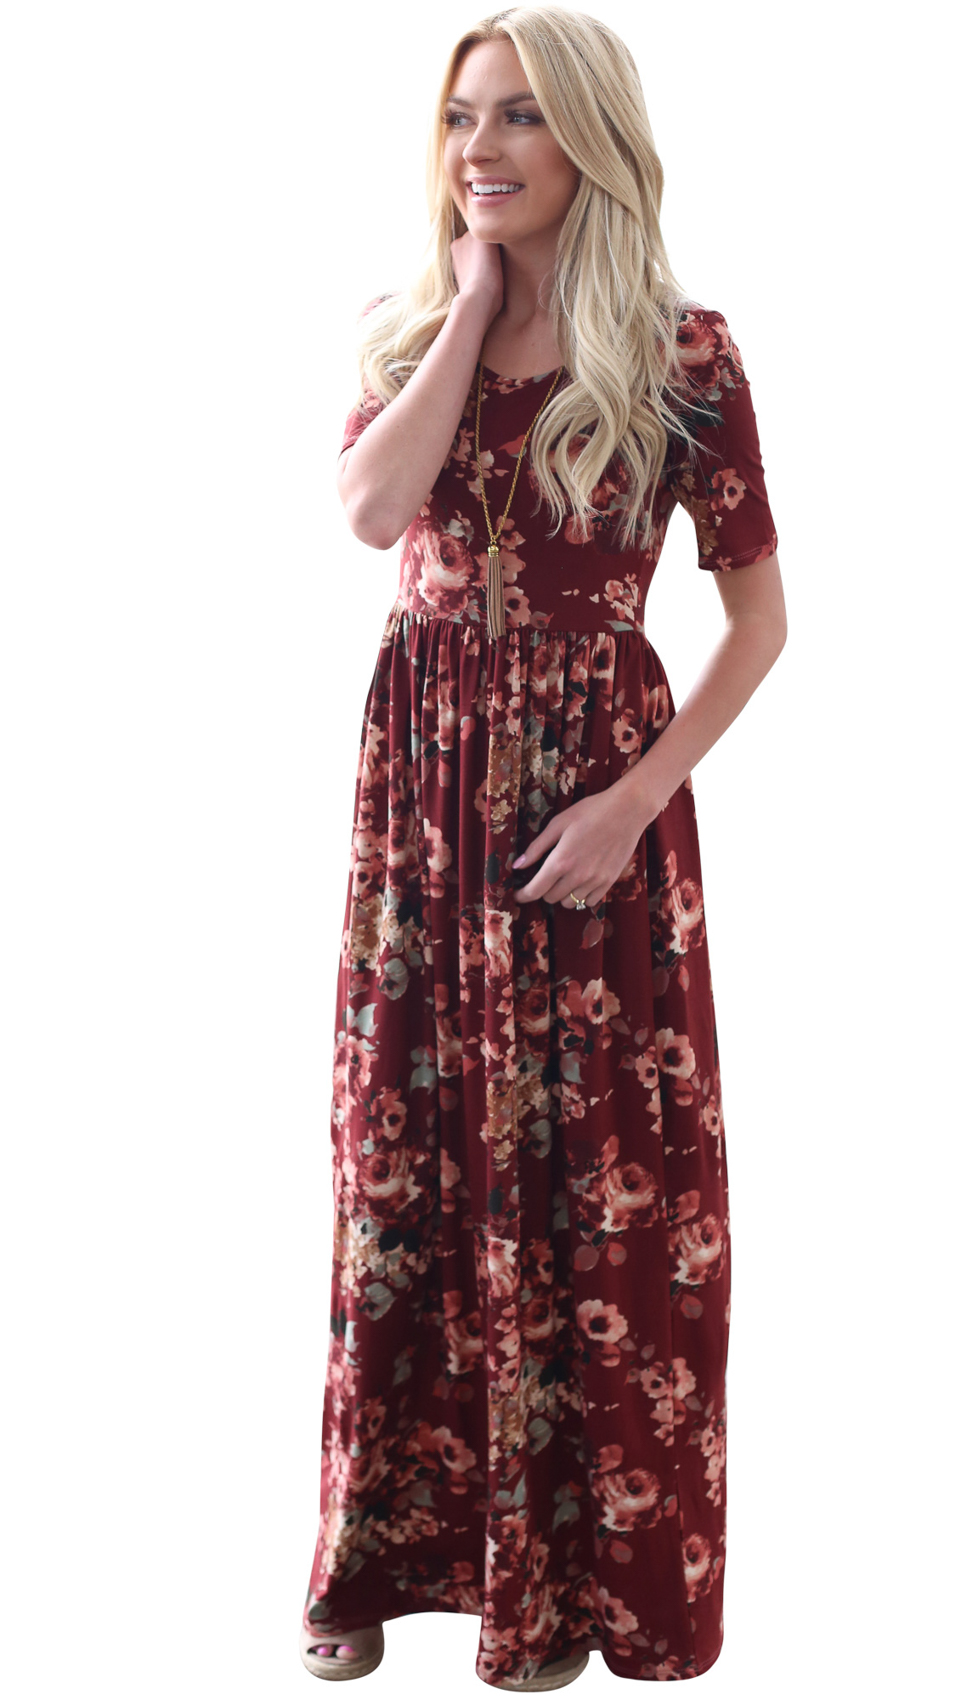 e879dc110f49 Miranda Modest Maxi Dress in Burgundy (Dark Red) w Floral Print